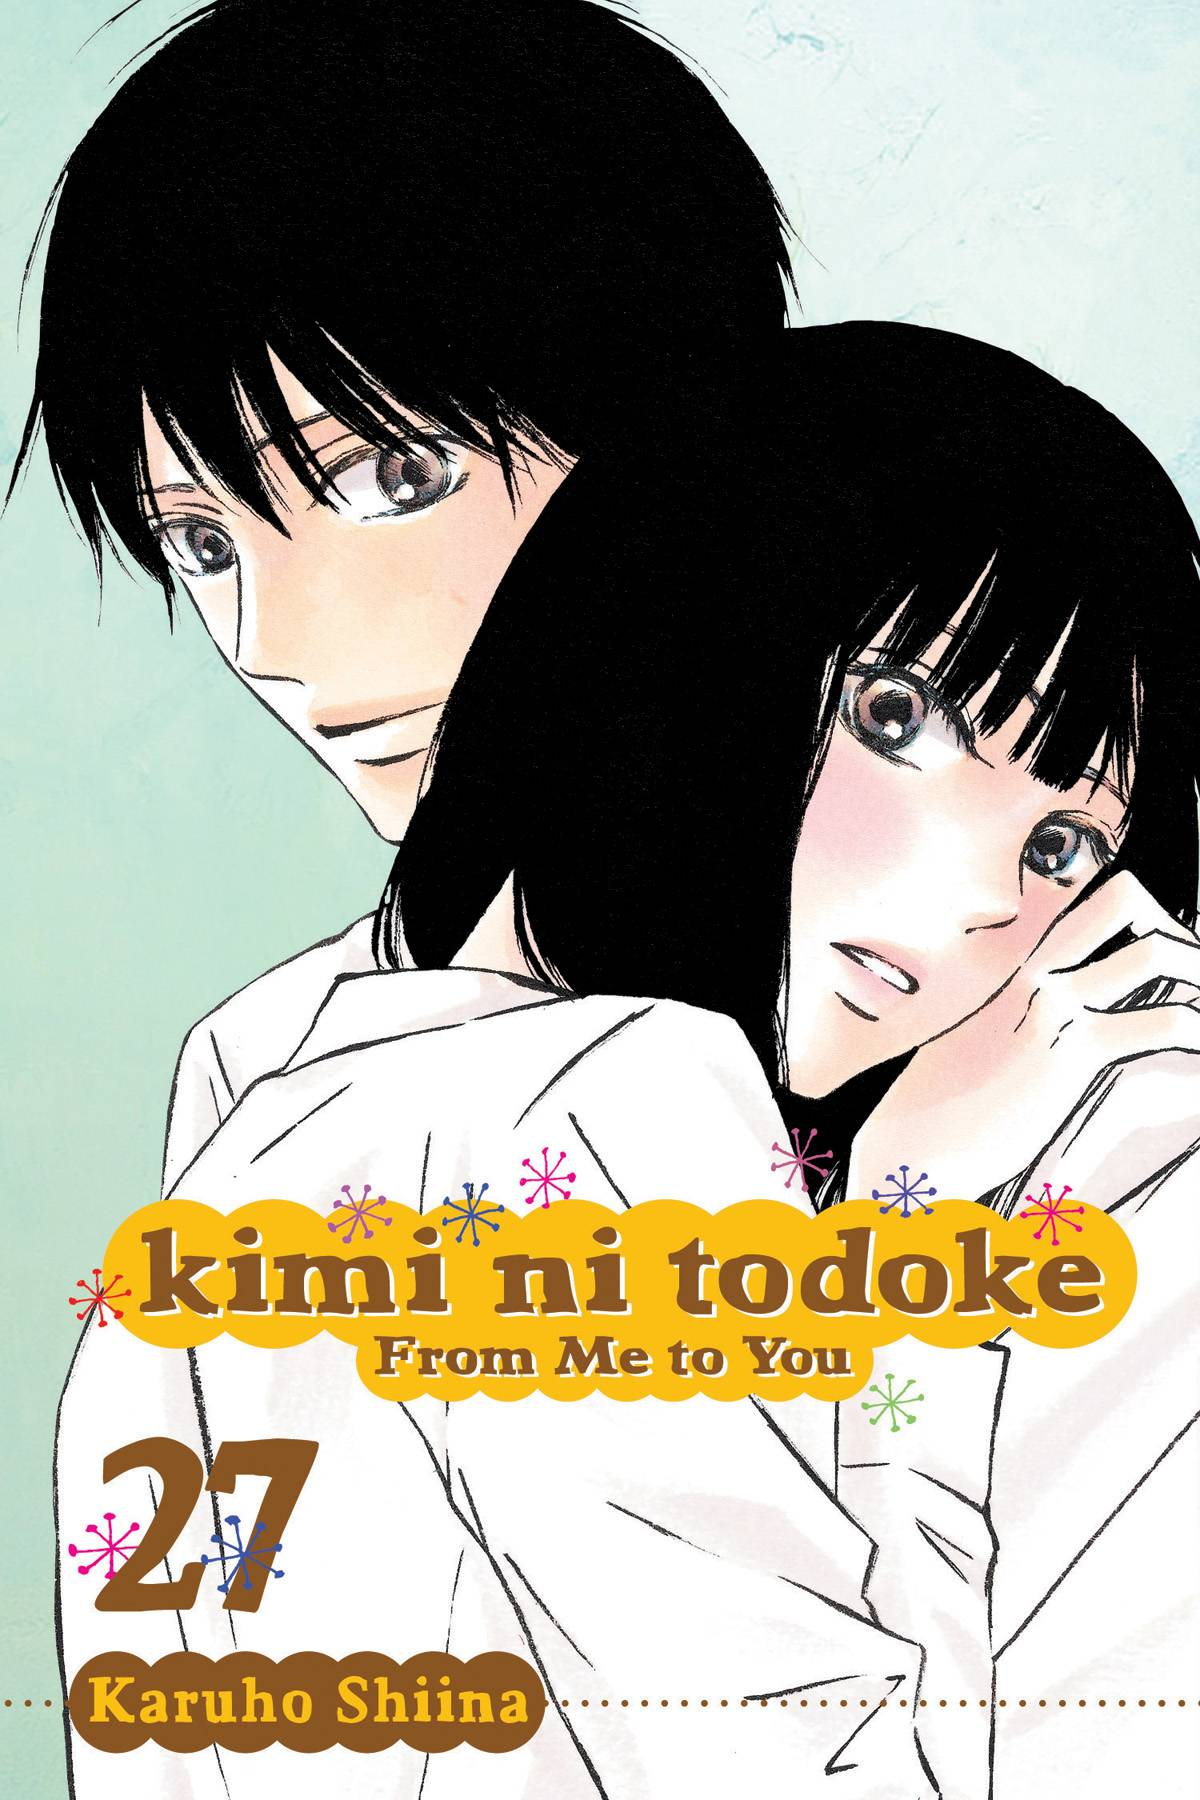 KIMI NI TODOKE GN VOL 27 FROM ME TO YOU